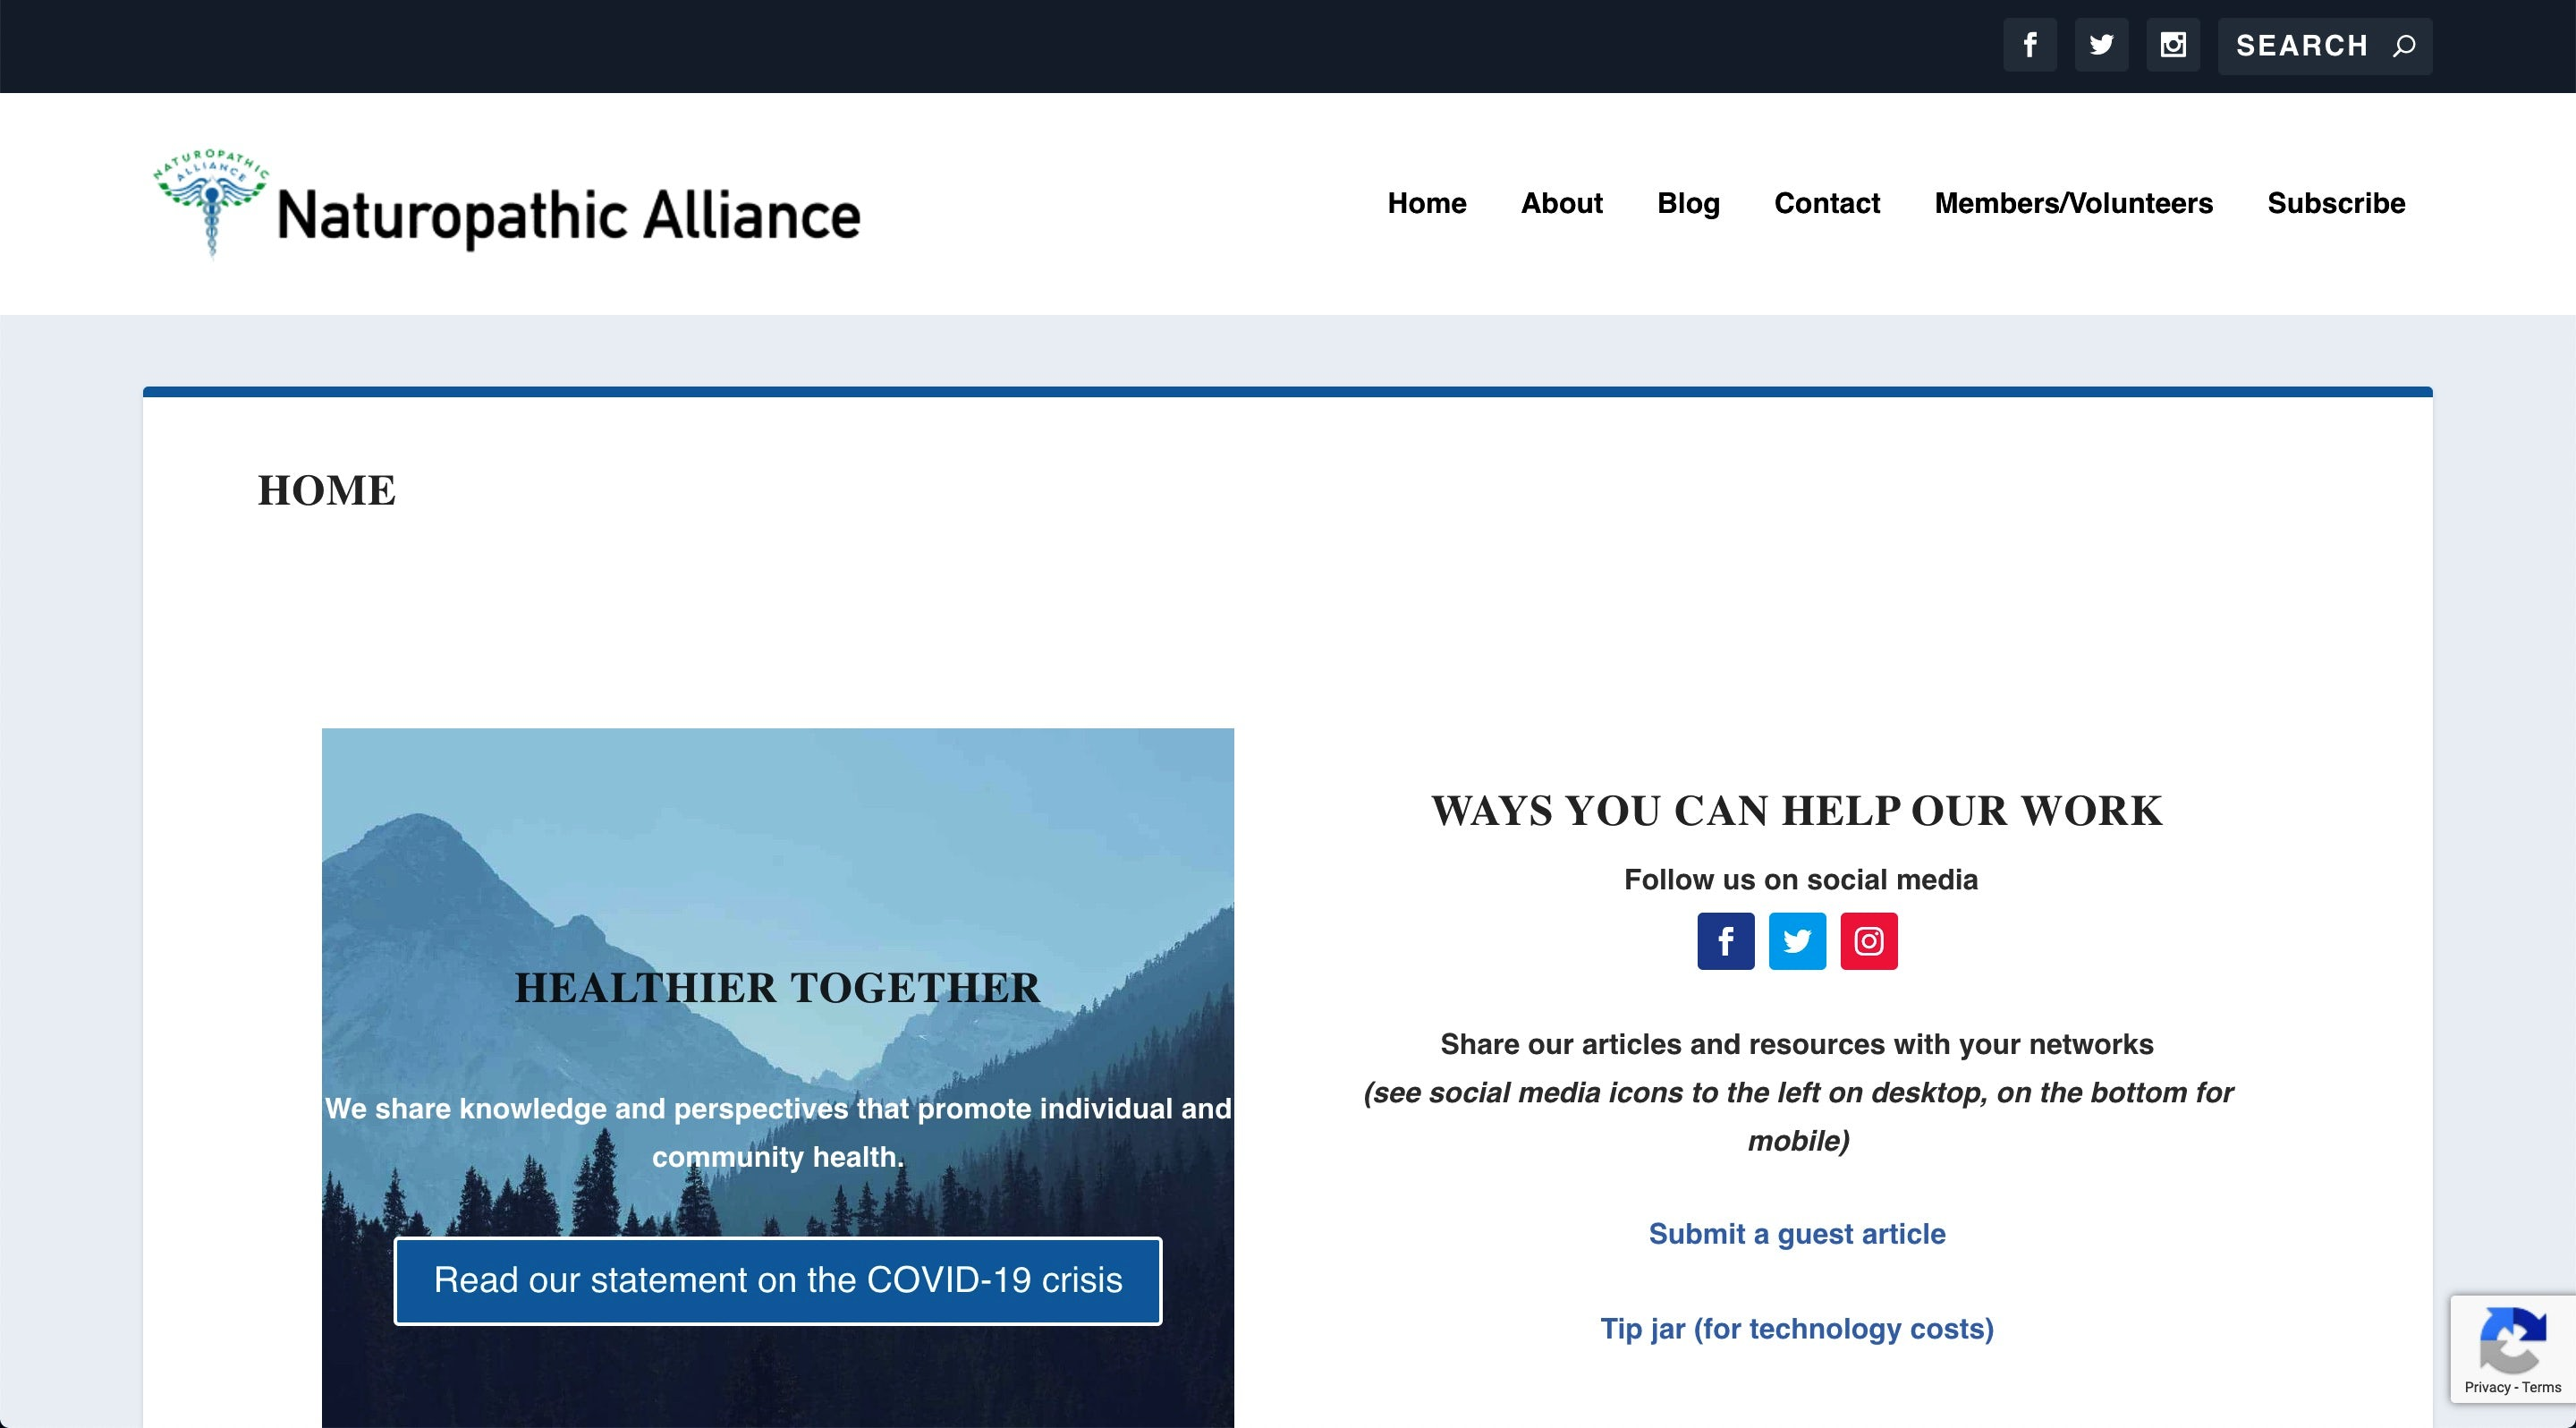 Naturopathic Alliance site